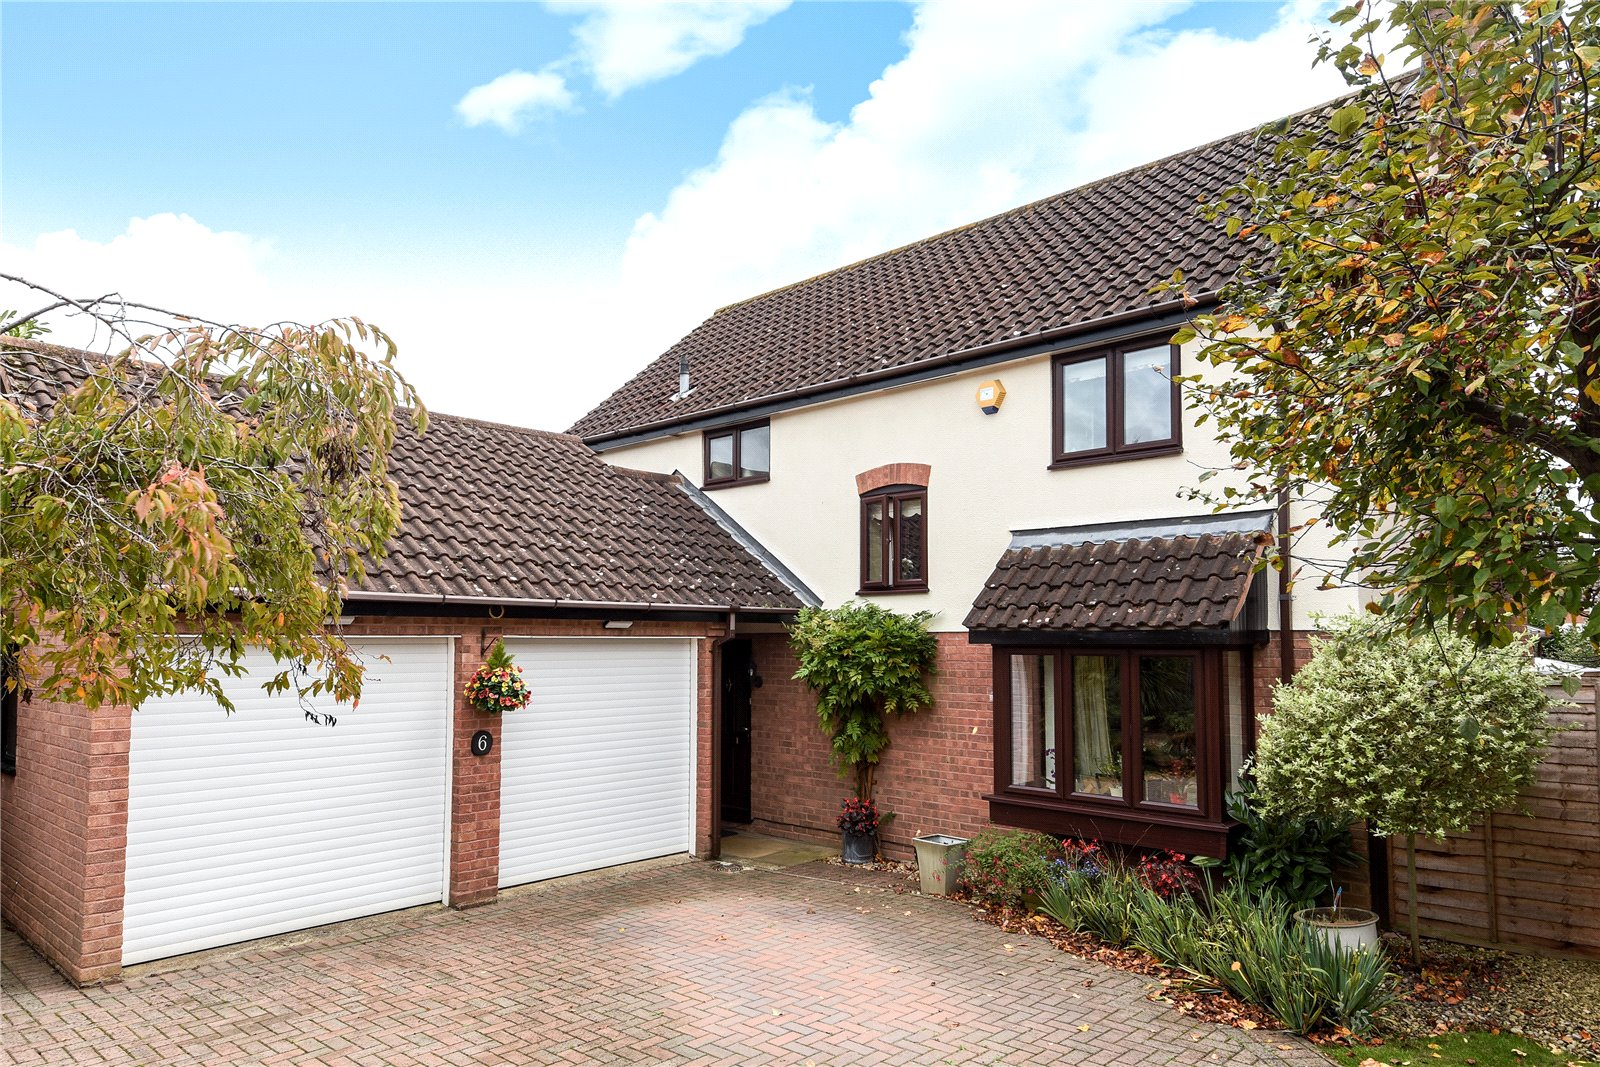 4 Bedrooms Detached House for sale in Cambridgeshire Close, Wokingham, Berkshire, RG41